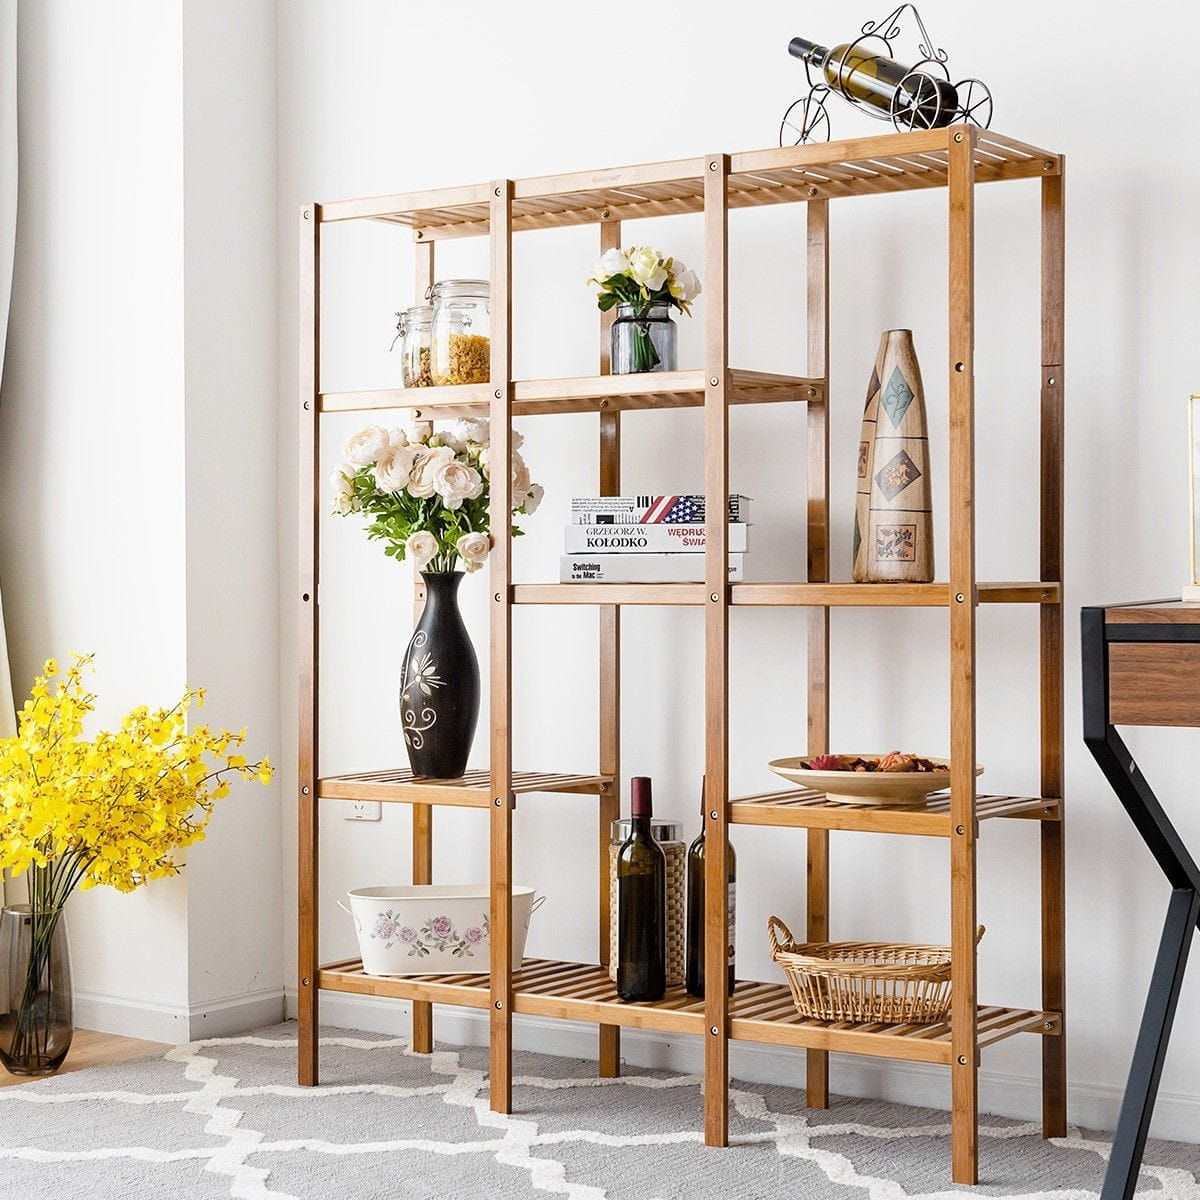 Costway Multifunctional Bamboo Shelf Storage Organizer Rack + $83.95 + FS